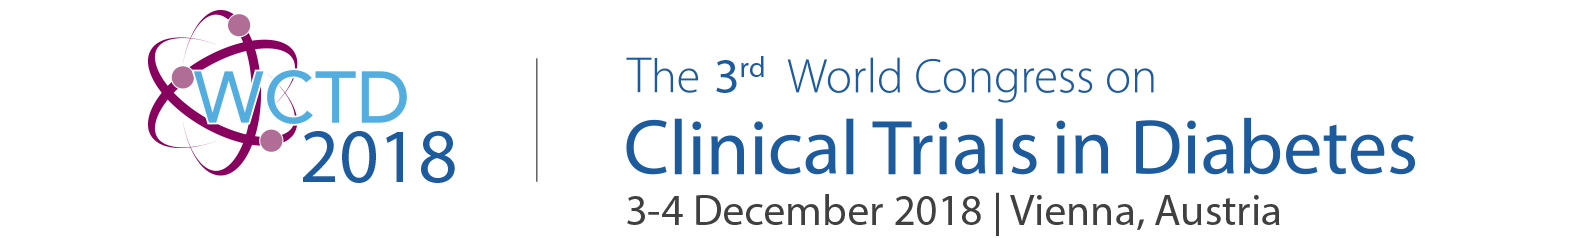 The 2nd World Congress on Clinical Trials in Diabetes